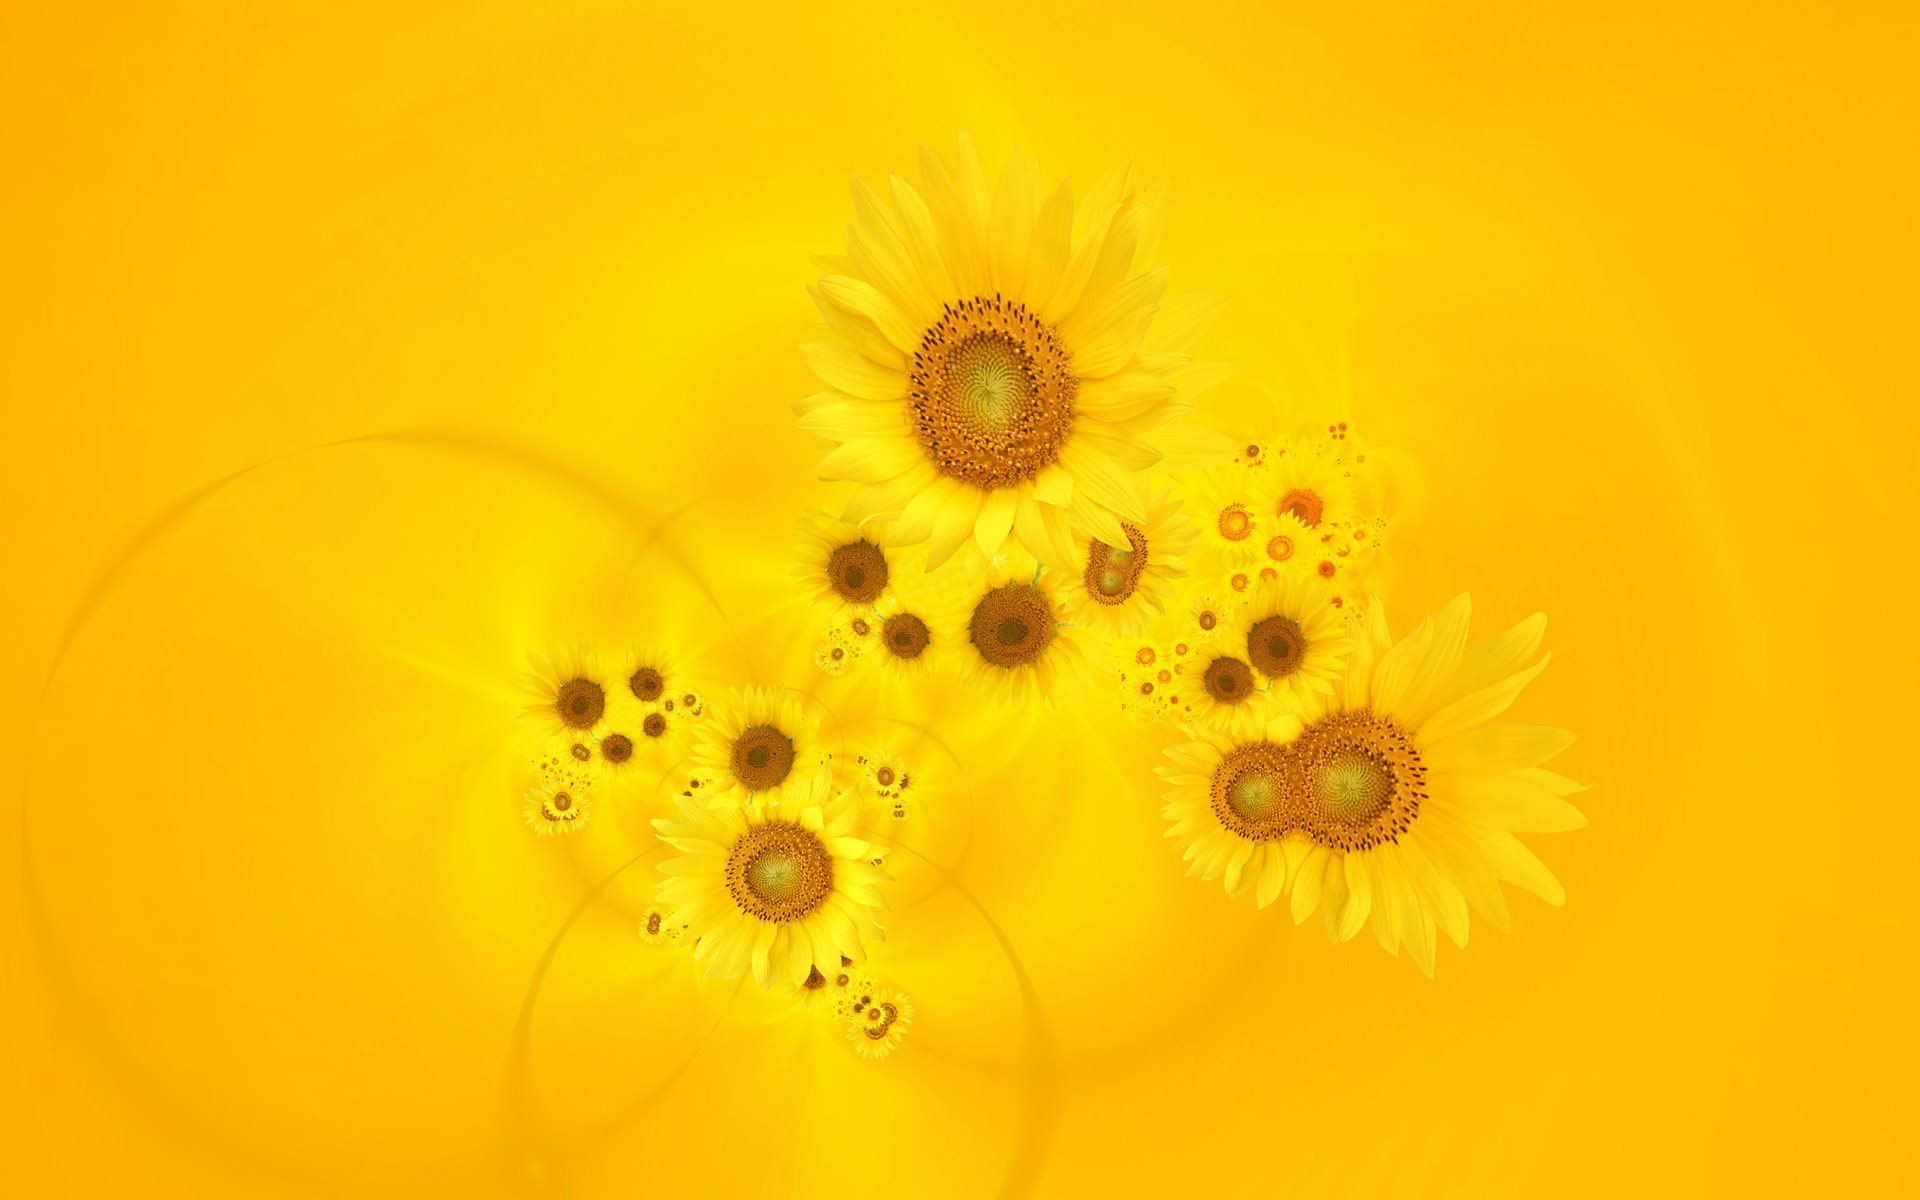 sunflower wallpapers hd